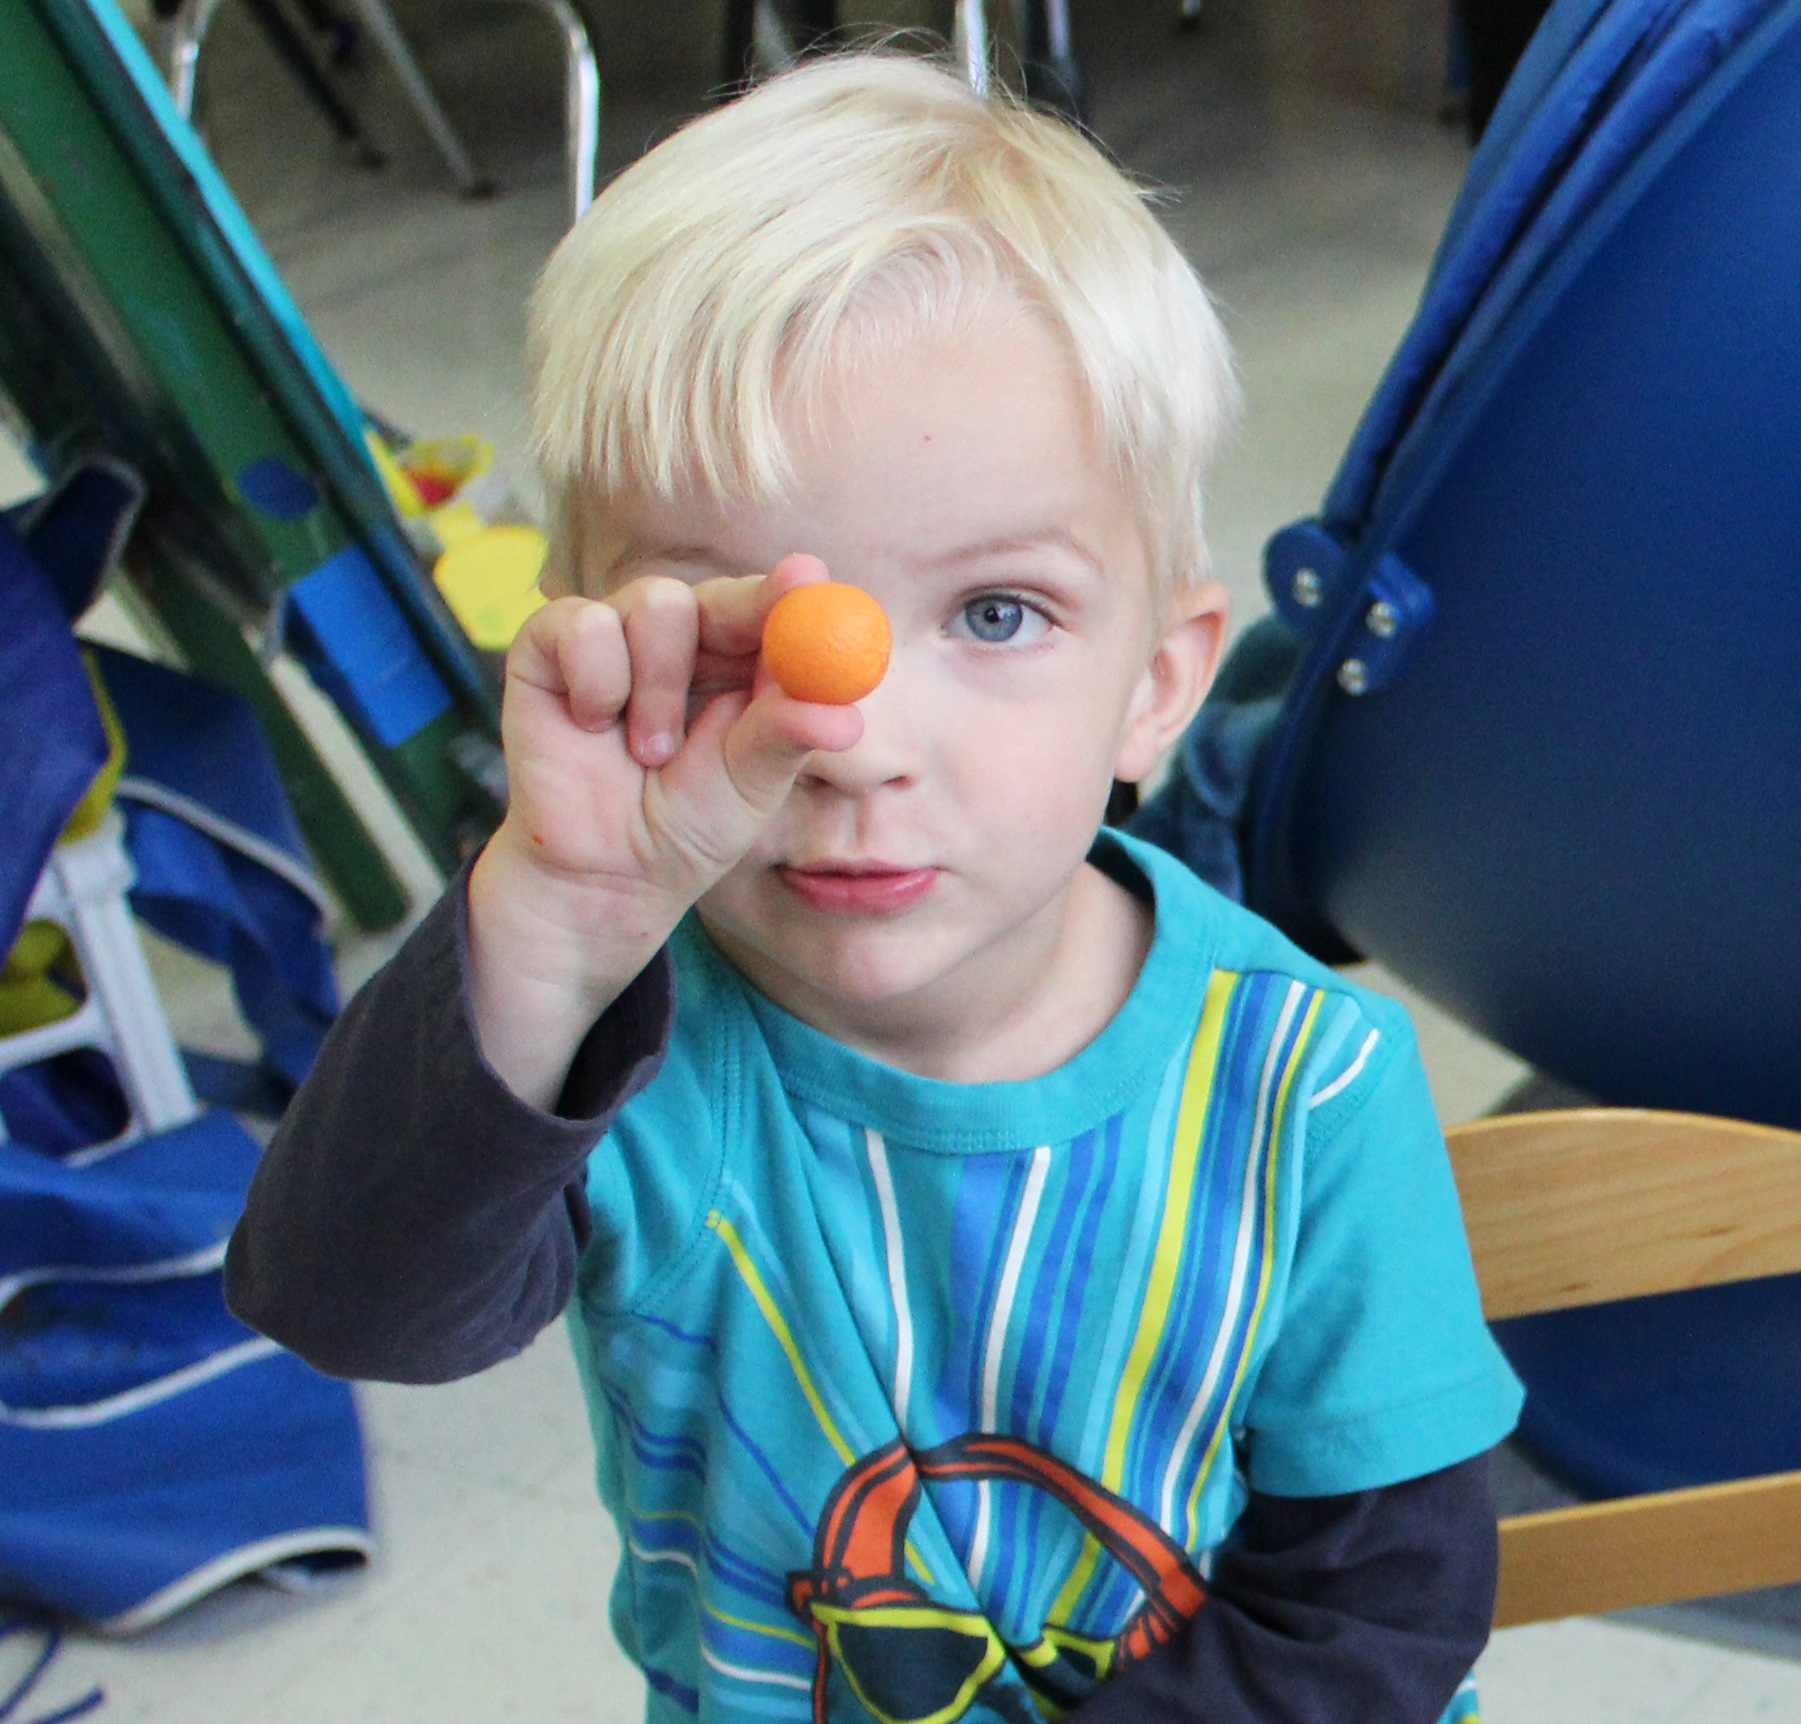 WHO WE ARE - Find out about the mission and methods of Preschool the Idaho Way, and why access to early learning is so important.